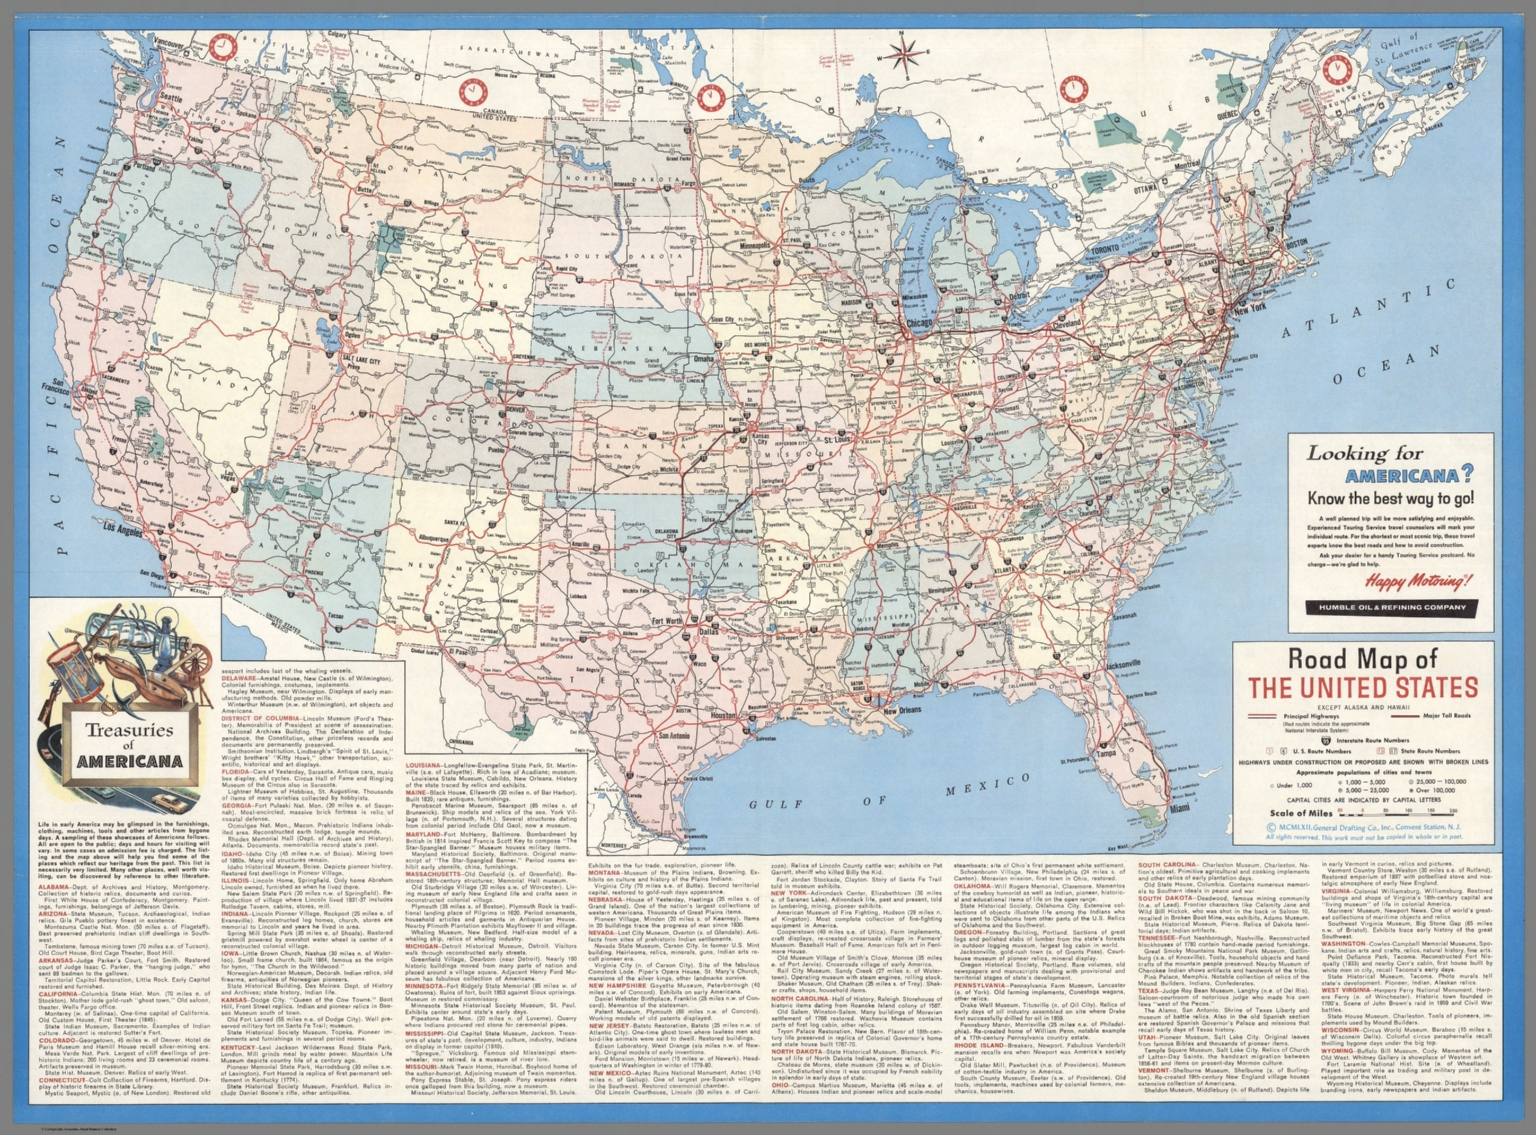 road map of the united states except alaska and hawaii mcmlxii 1962